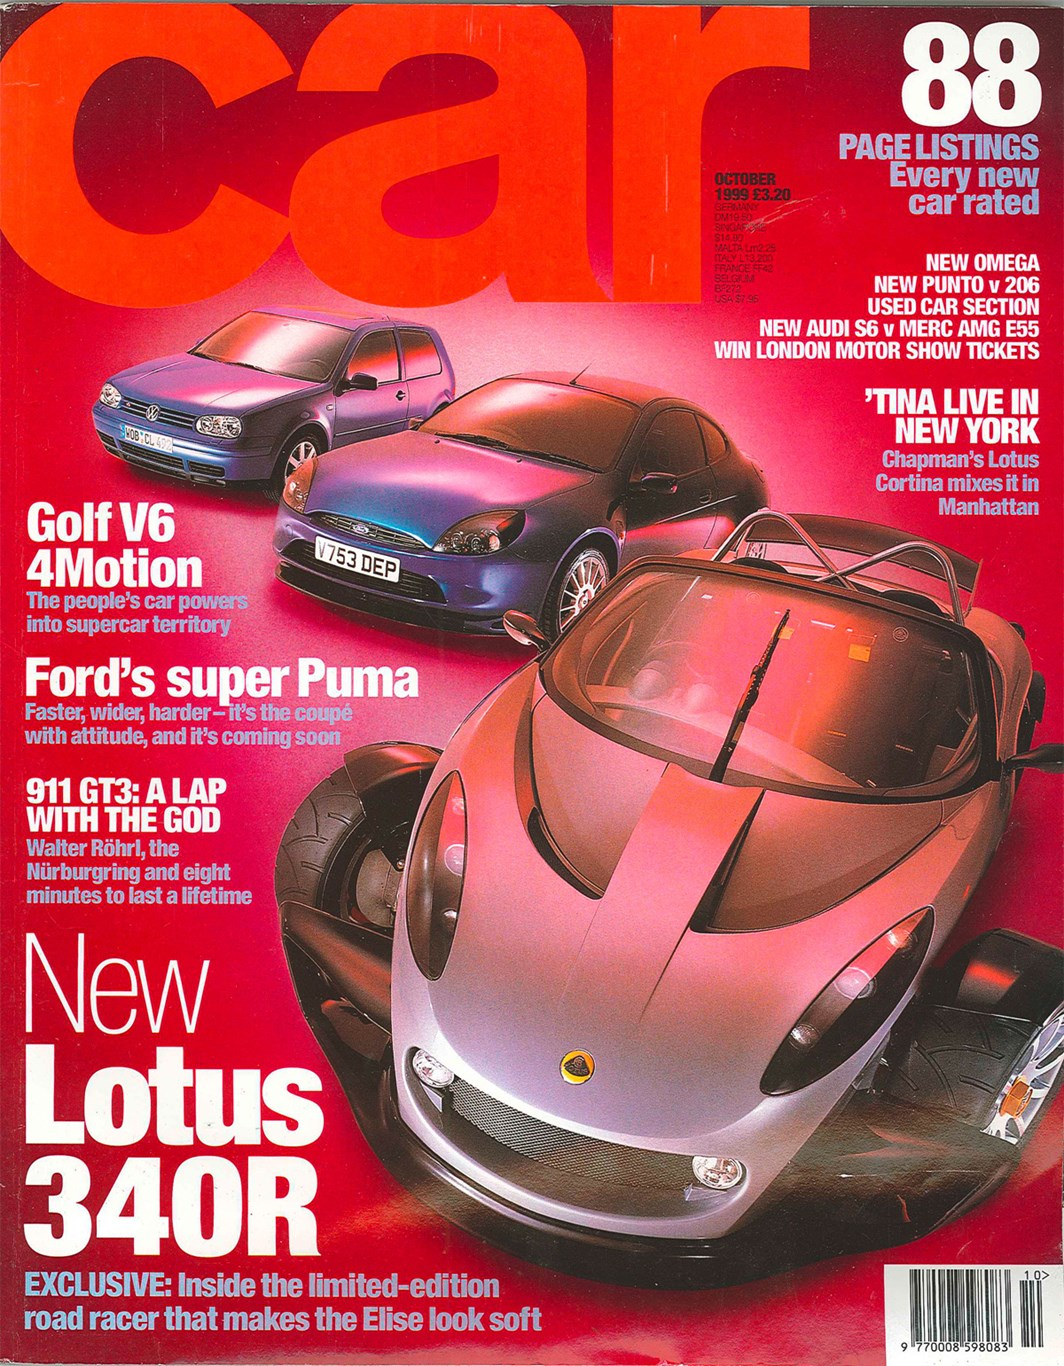 CAR magazine, October 1999: starring the Ford Racing Puma, Lotus 340R and VW Golf V6 4Motion